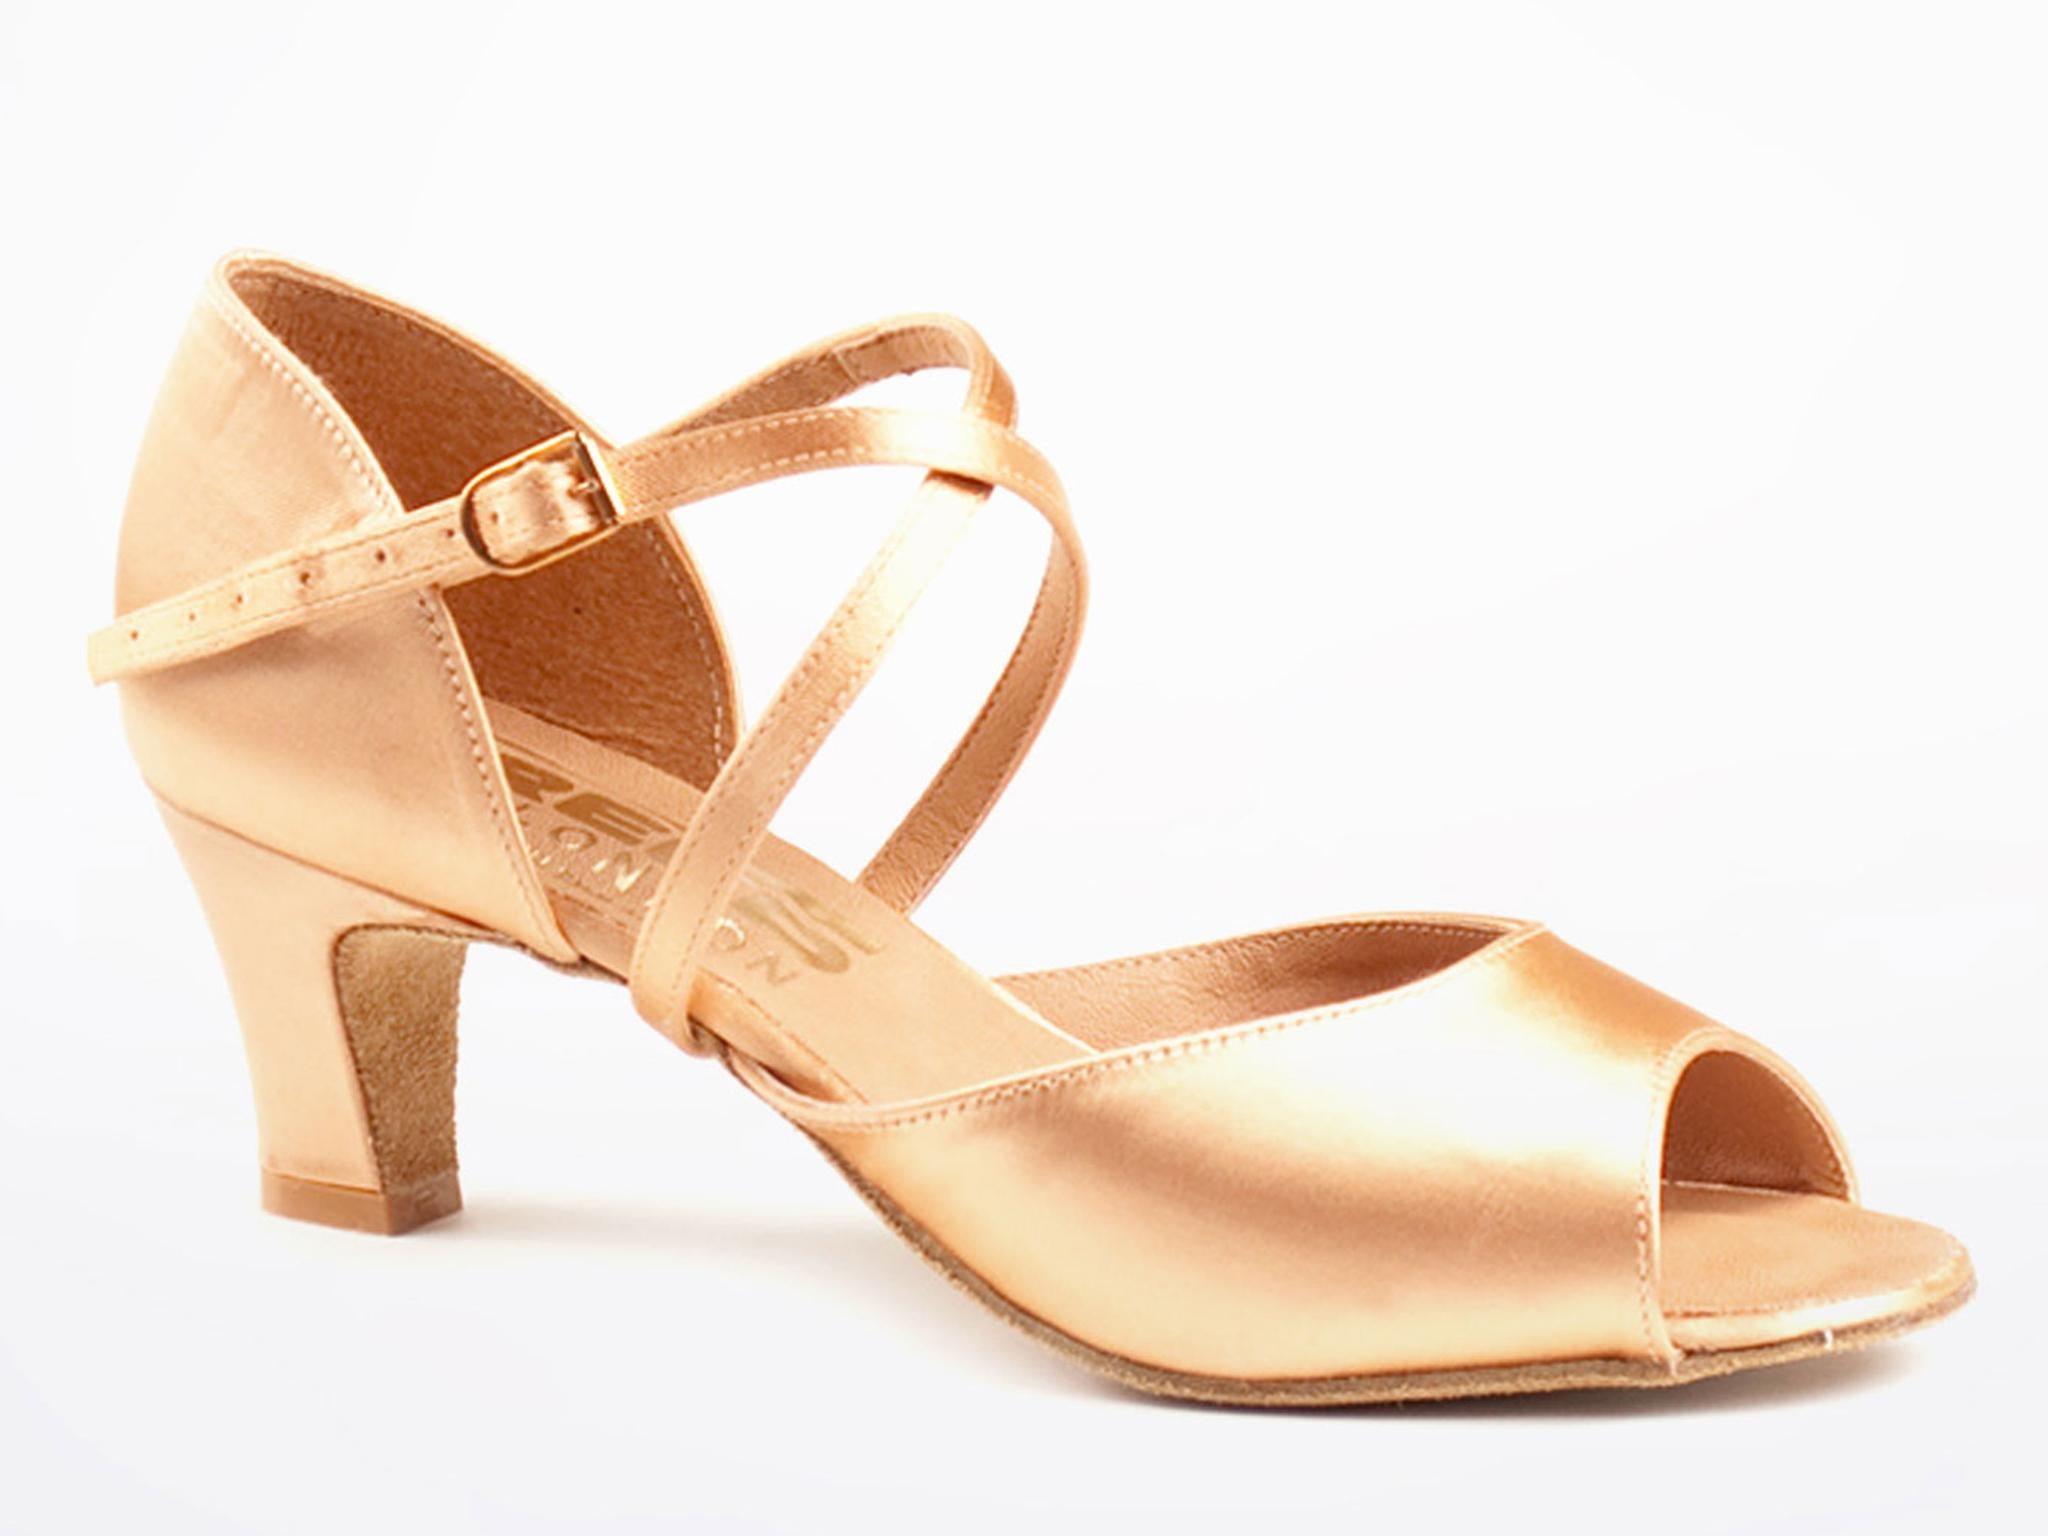 11 Best Shoes For WomenThe Dance Independent RAj4c35LqS